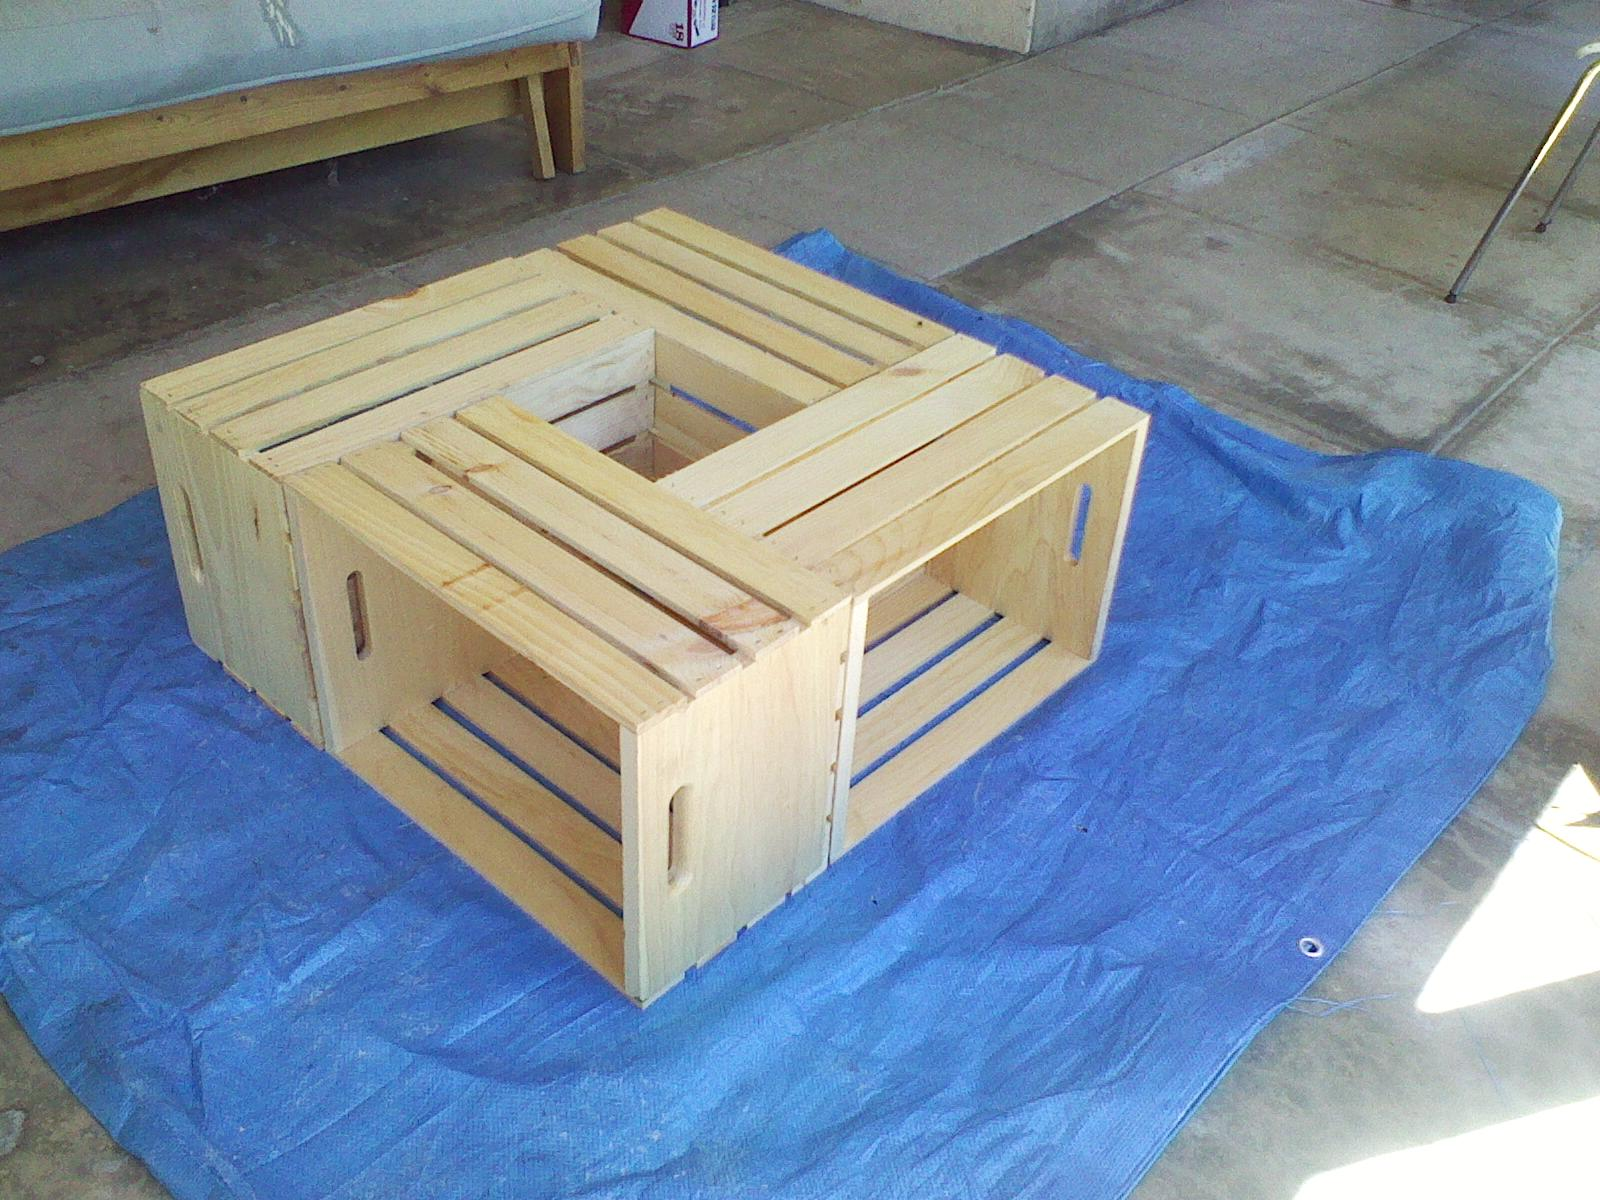 ...but, I digress...: Wooden Crate Coffee Table - Day 2